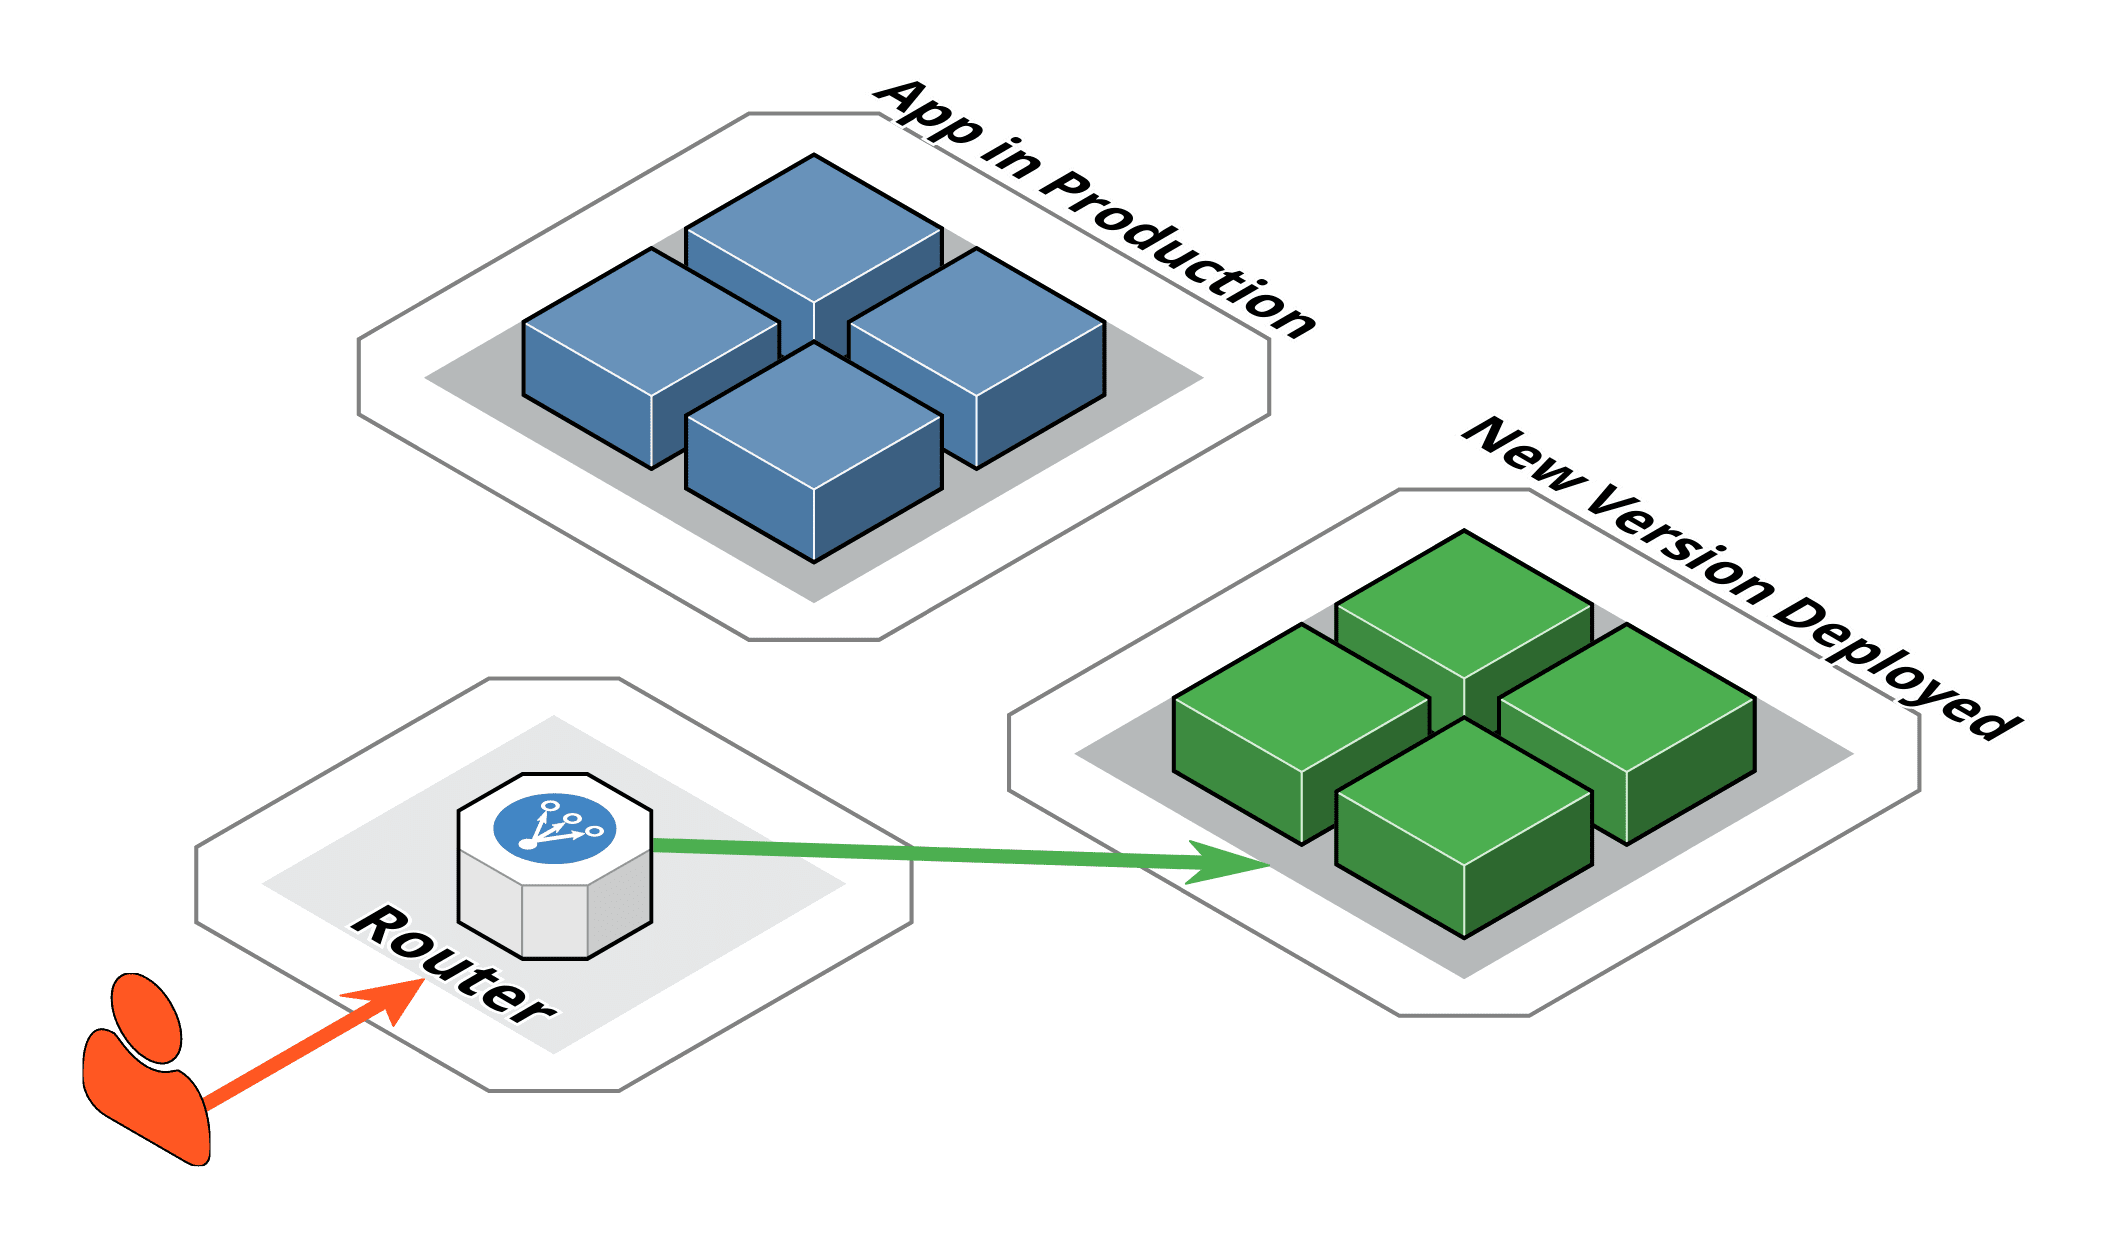 An image with blue deployment (old version of the service) don't receive any traffic. The router routes 100% of the traffic to the green (the new version) version.